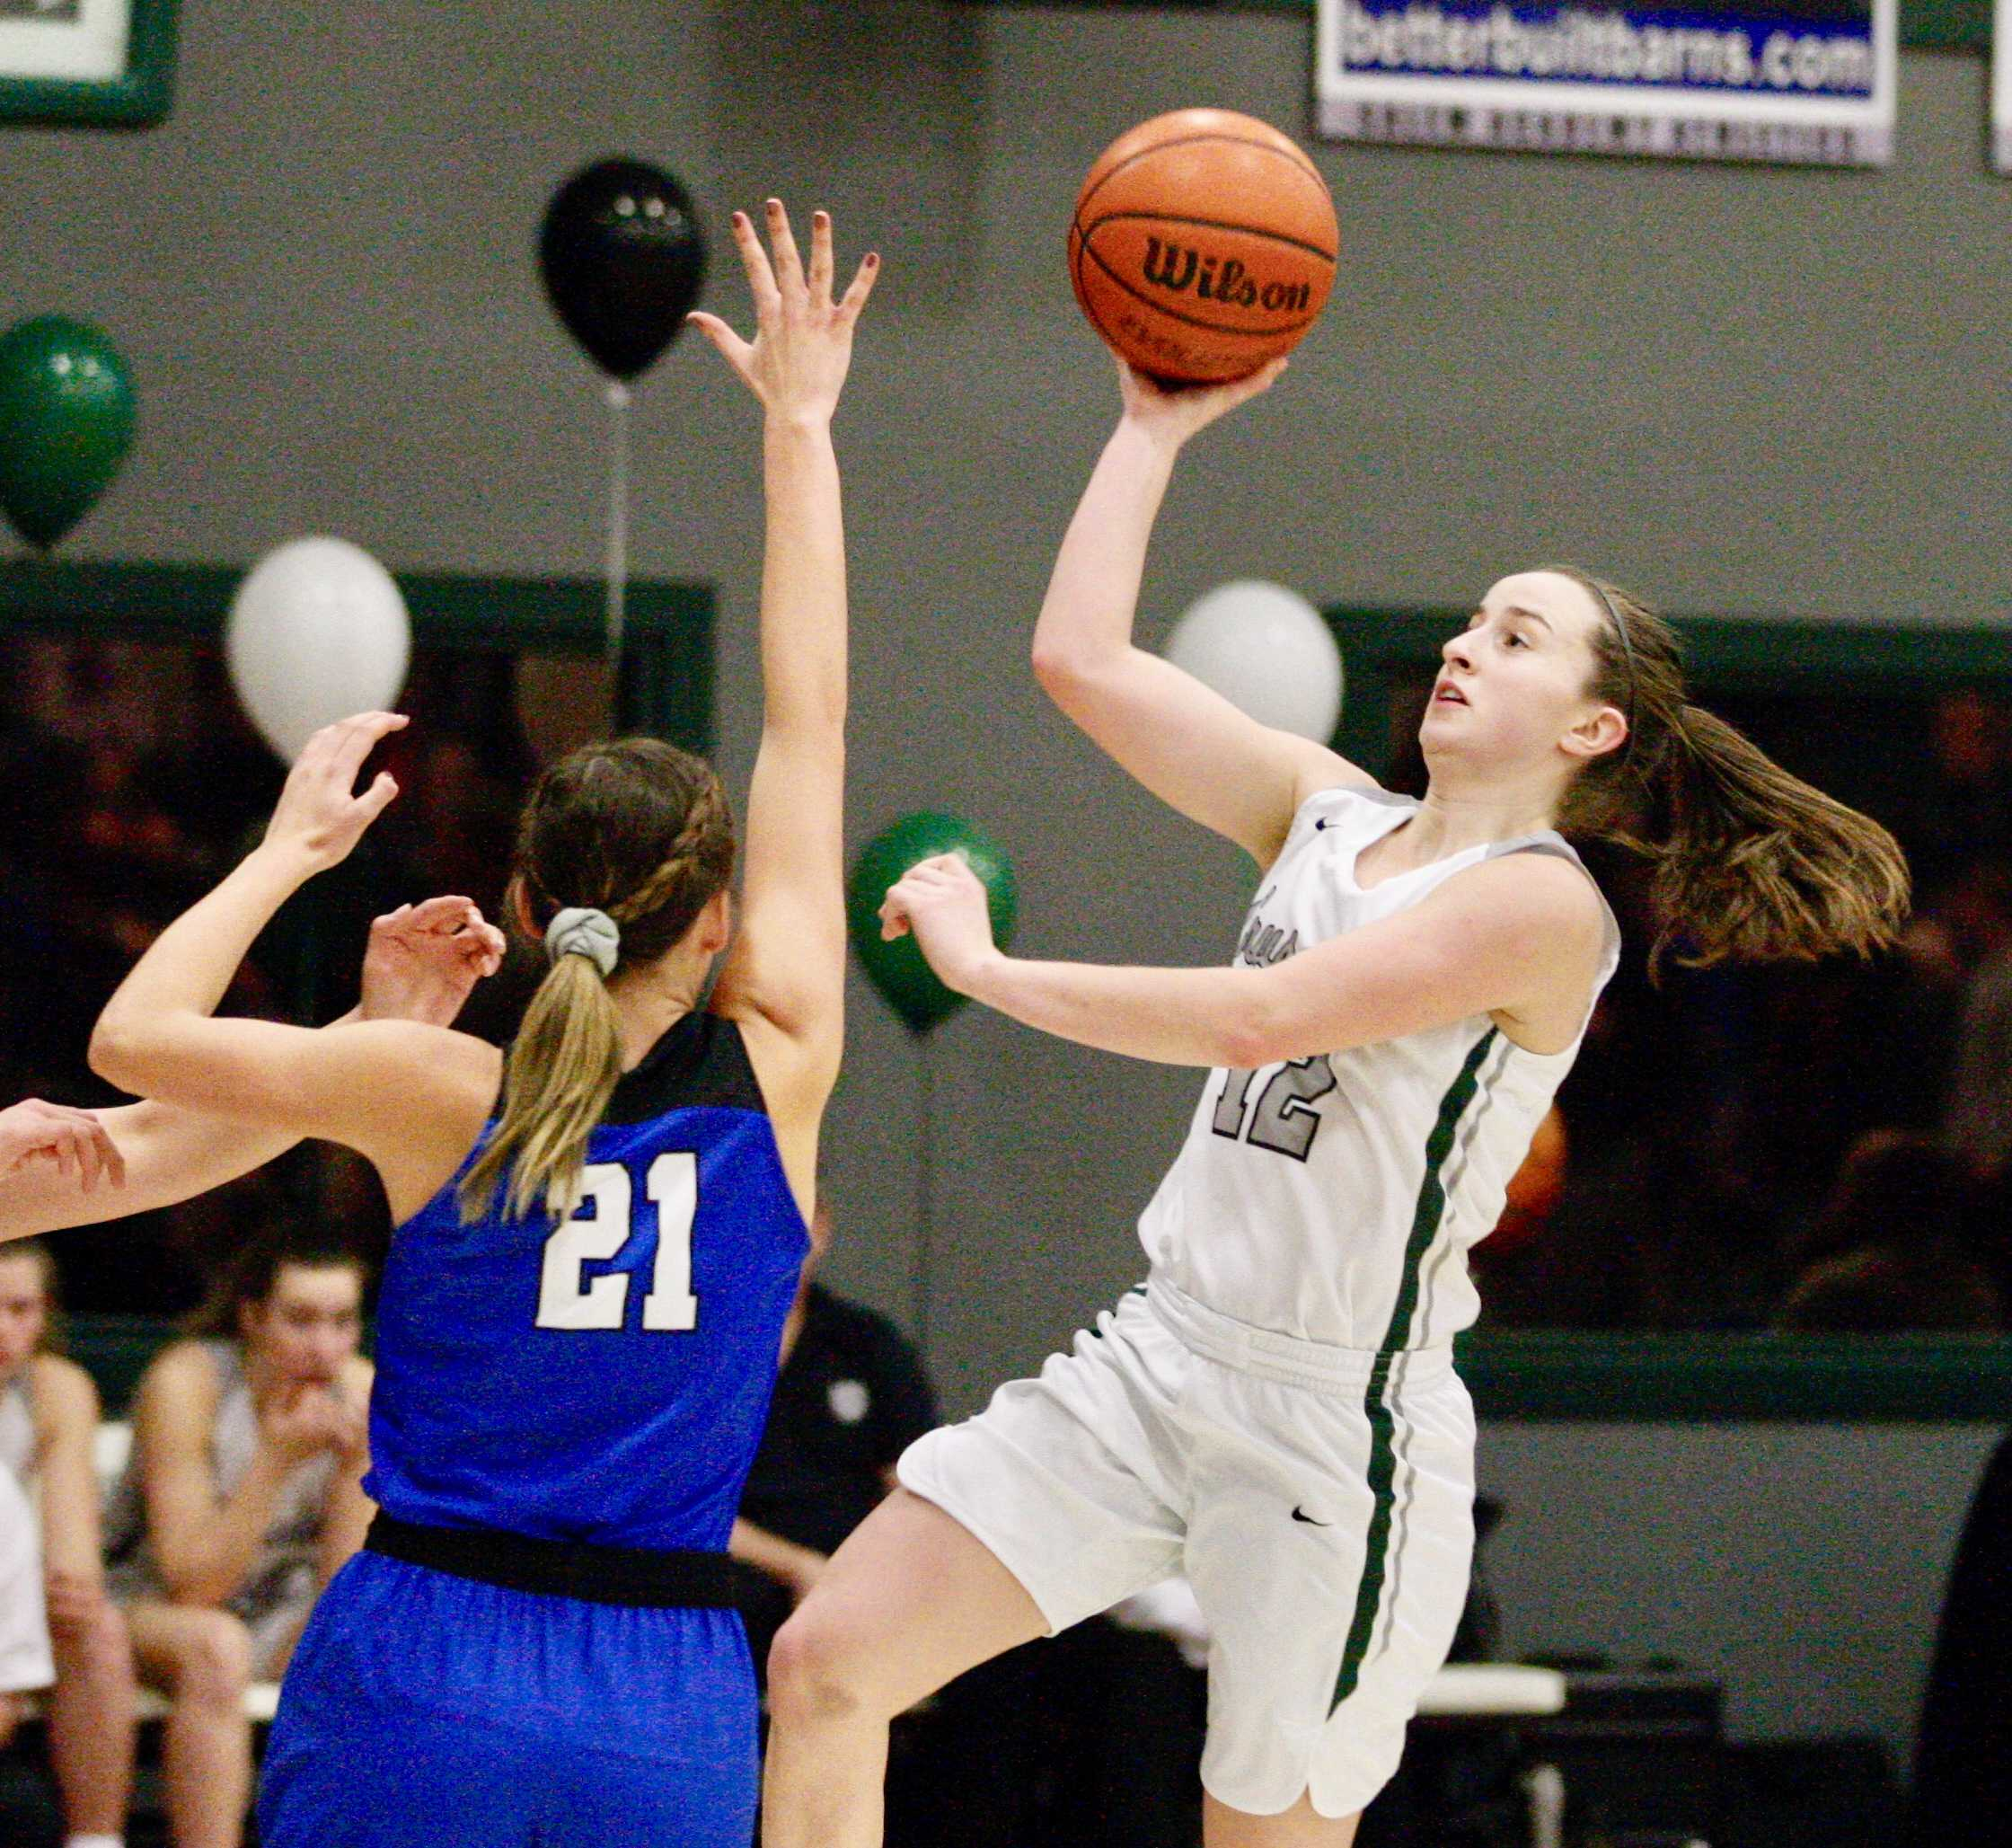 Salem Academy's Kirsten Koehnke drives past Blanchet Catholic's Hailey Ostby for two of her game-high 23 points.